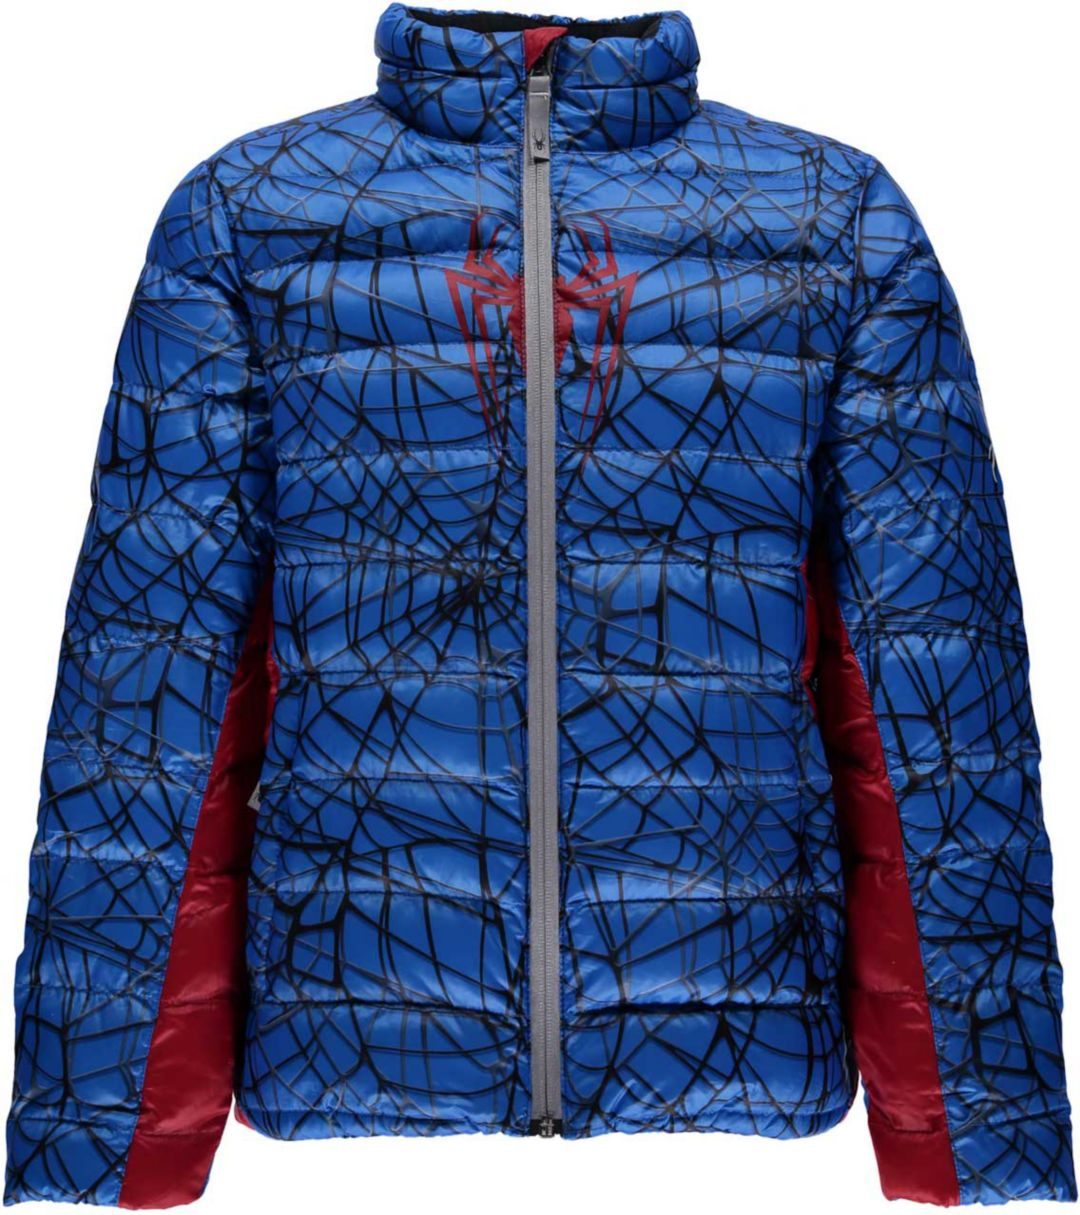 cd75851af338da Spyder Boys' Marvel Prymo Insulated Jacket | DICK'S Sporting Goods